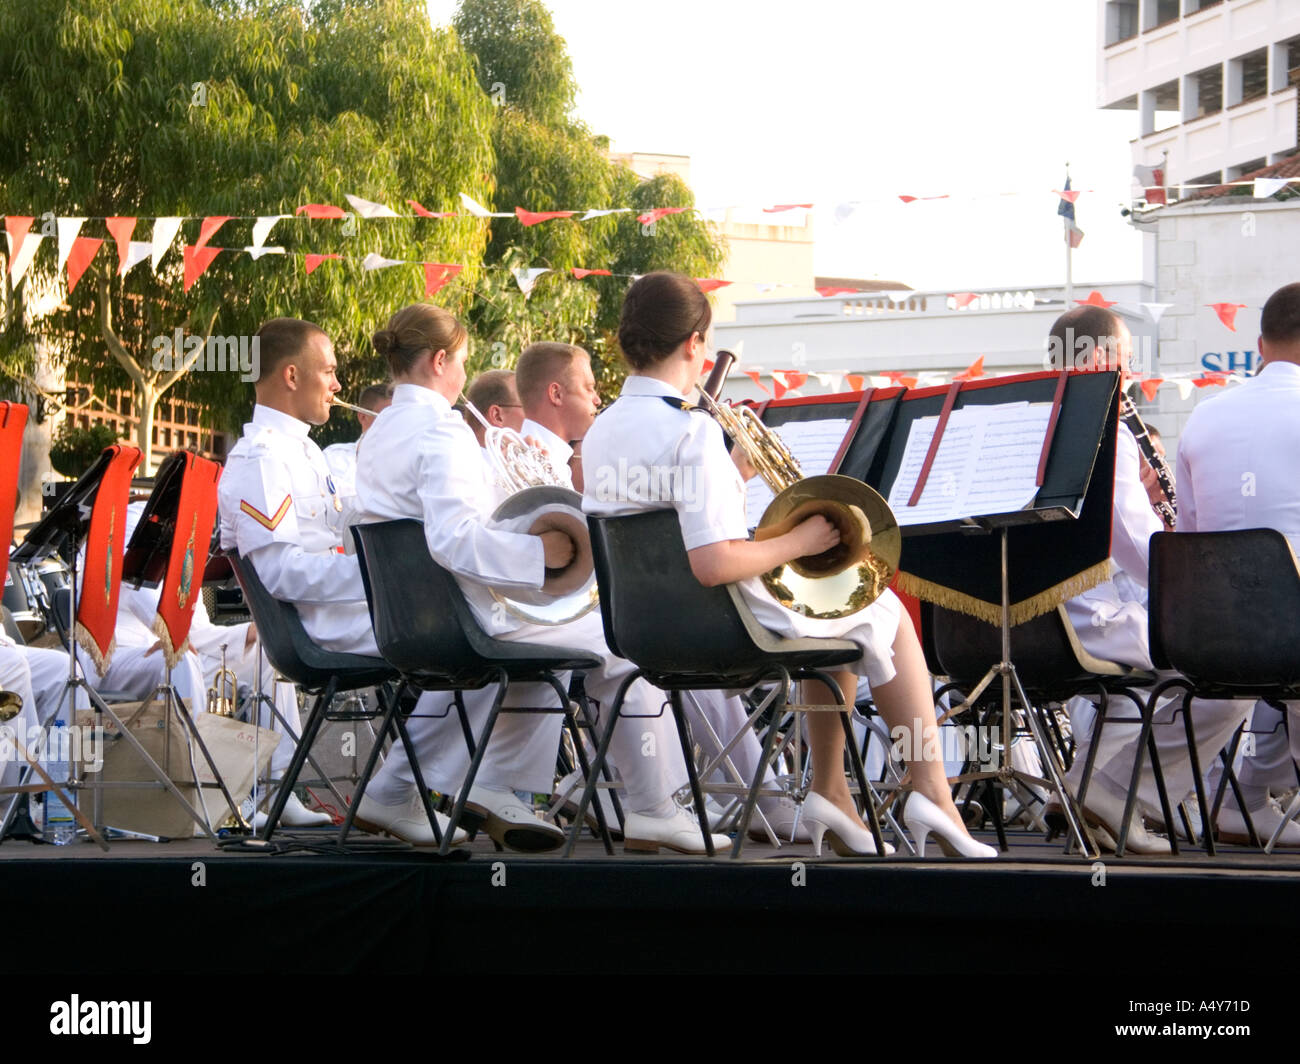 Royal Marines Band play in Gibraltar, to celebrate 300 years of British Rule,  military - Stock Image